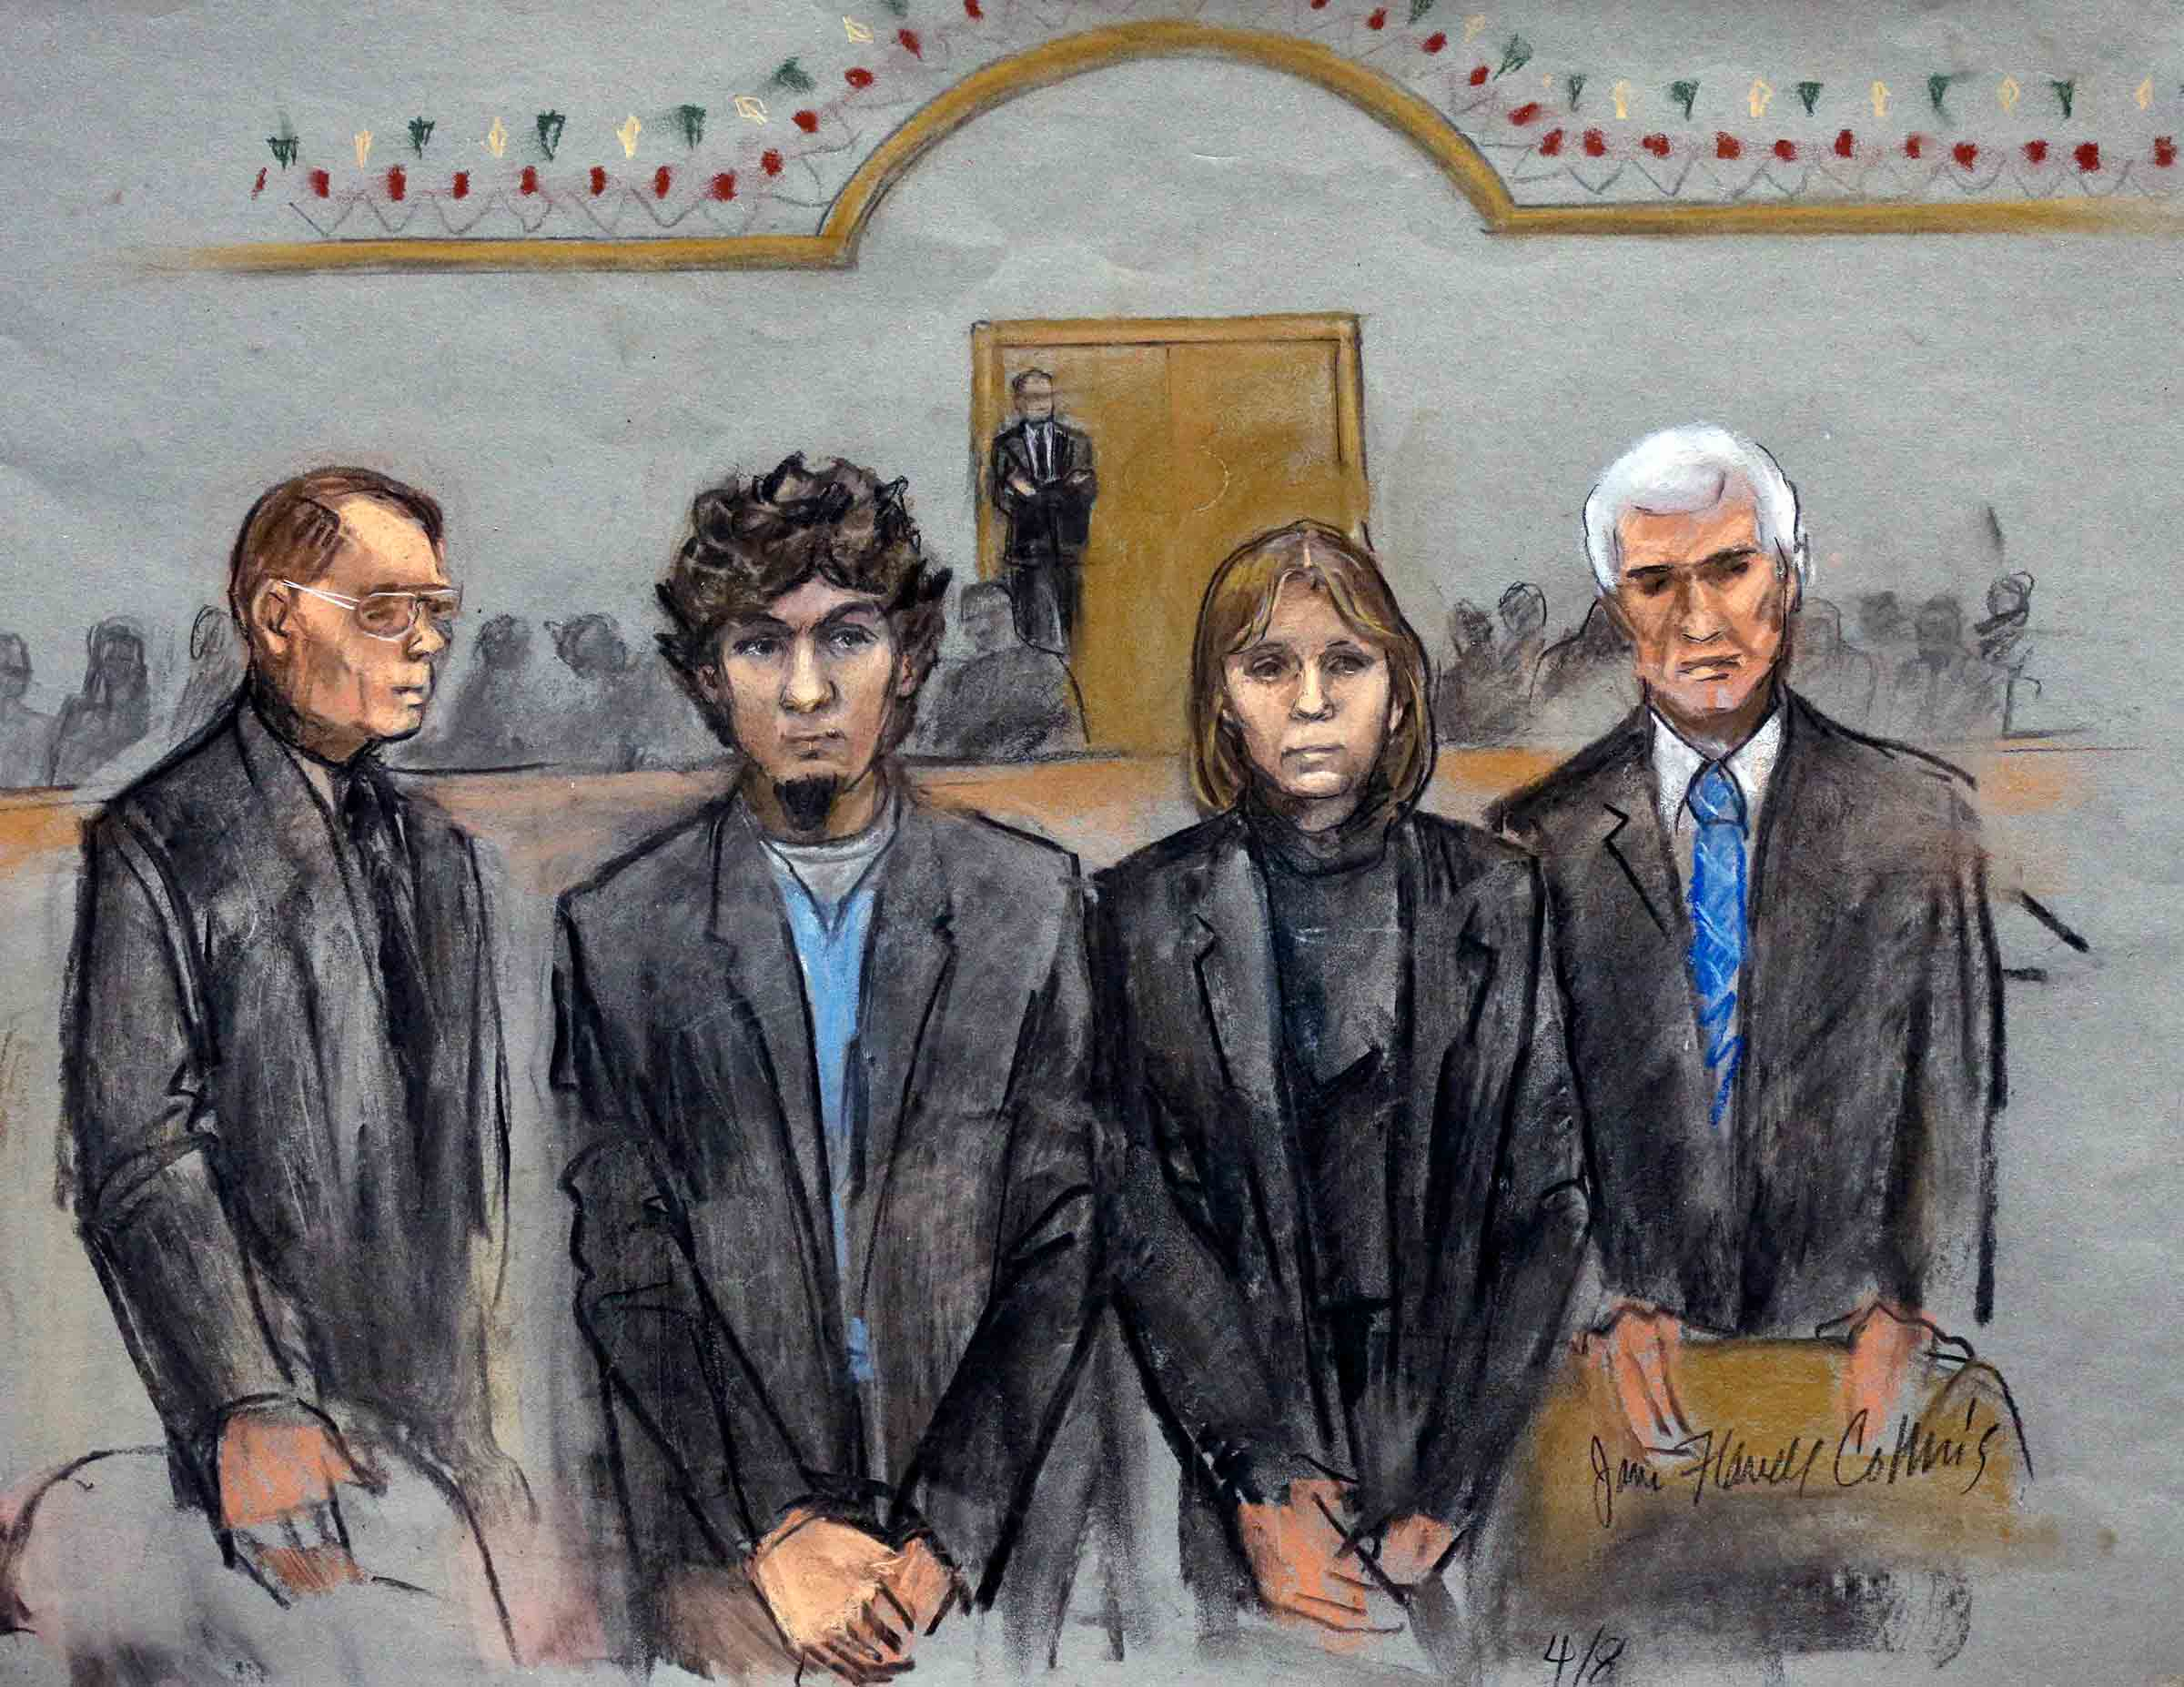 Courtroom sketch of Dzhokhar Tsarnaev, second from left standing with his defense attorneys William Fick, left, Judy Clarke, second from right, and David Bruck, right, as the jury presents its verdict in his federal death penalty trial Wednesday, April 8, 2015, in Boston